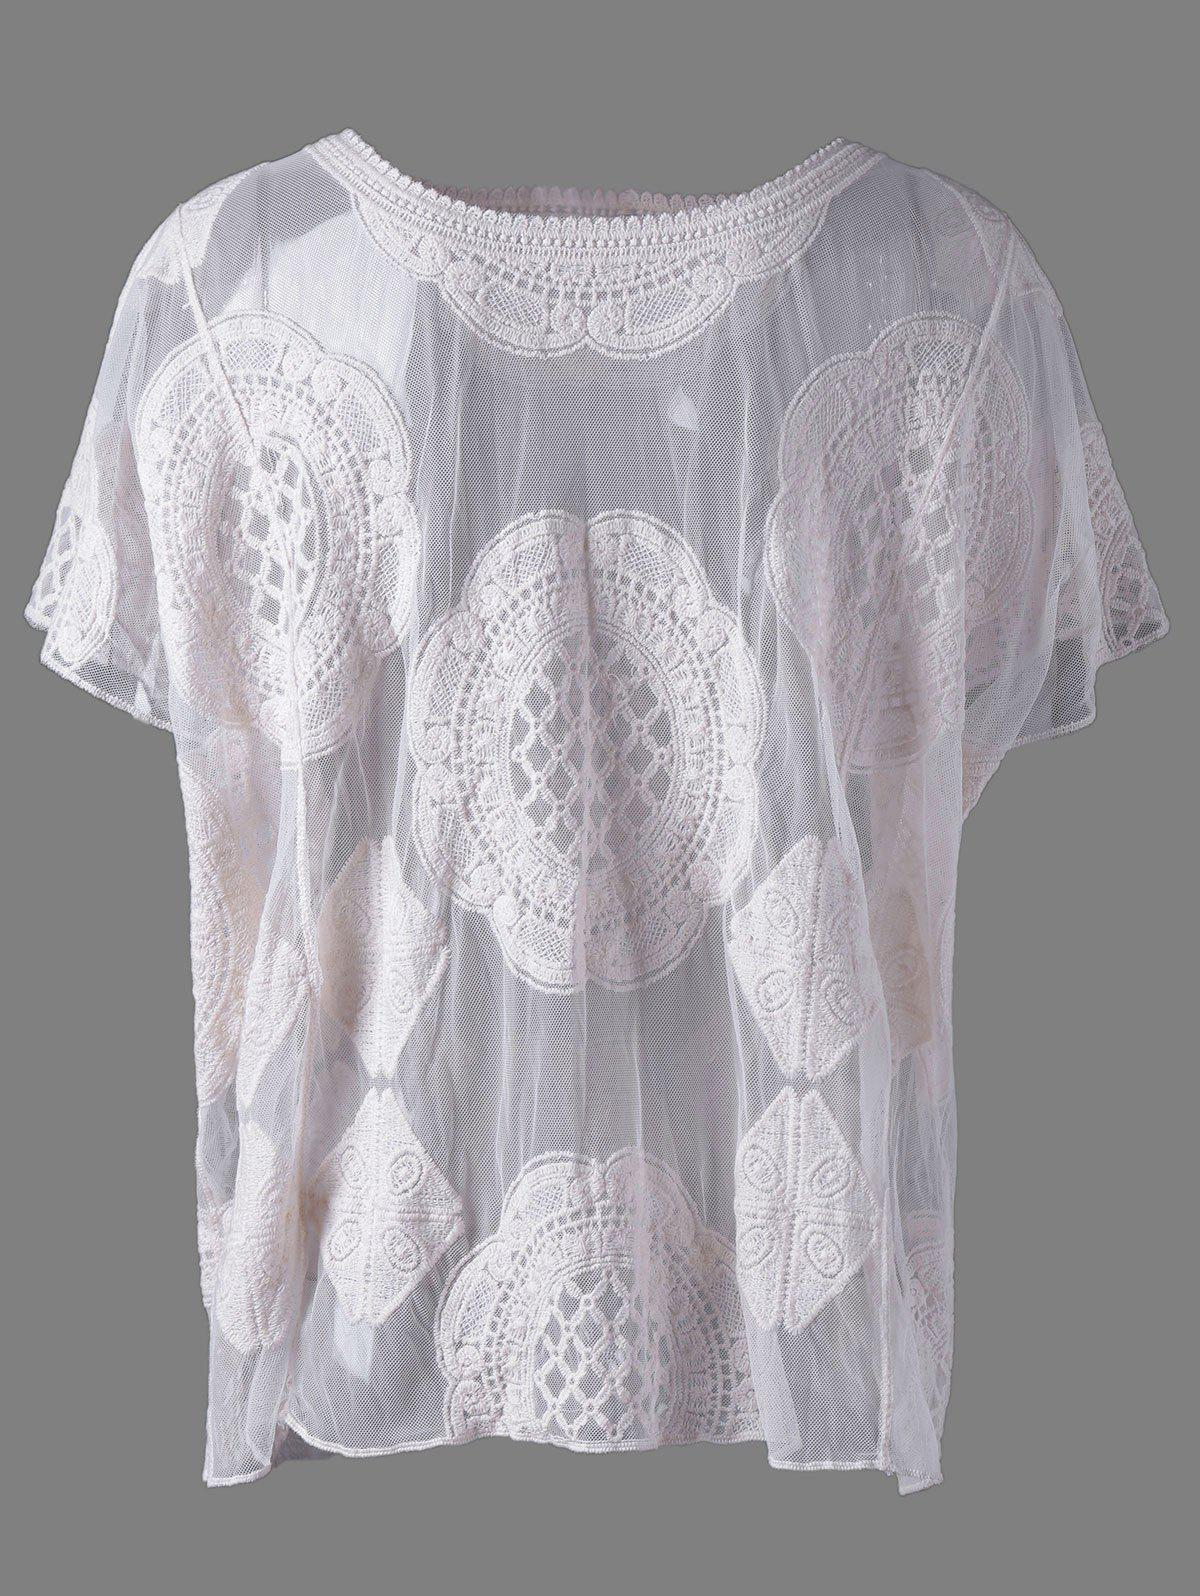 Stylish Women's Scoop Neck Lace Batwing Sleeves Blouse - BEIGE ONE SIZE(FIT SIZE XS TO M)